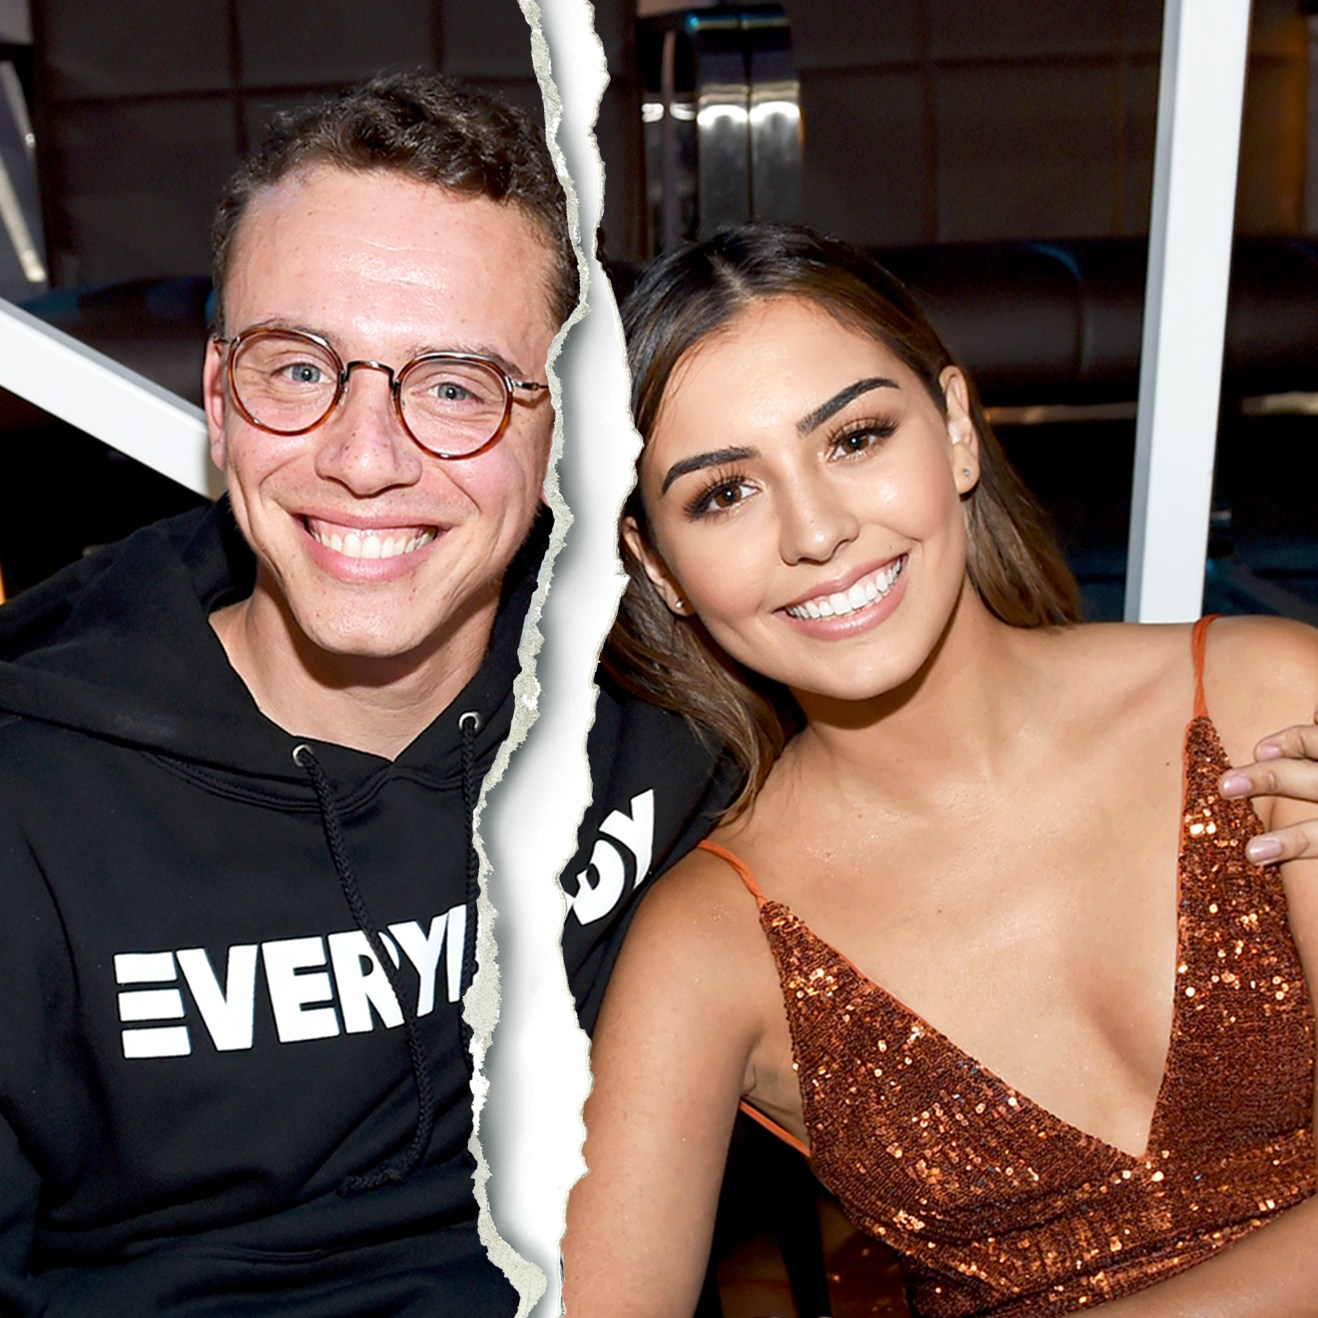 Logic and Jessica Andrea attend the 2017 MTV Video Music Awards at The Forum in Inglewood, California.